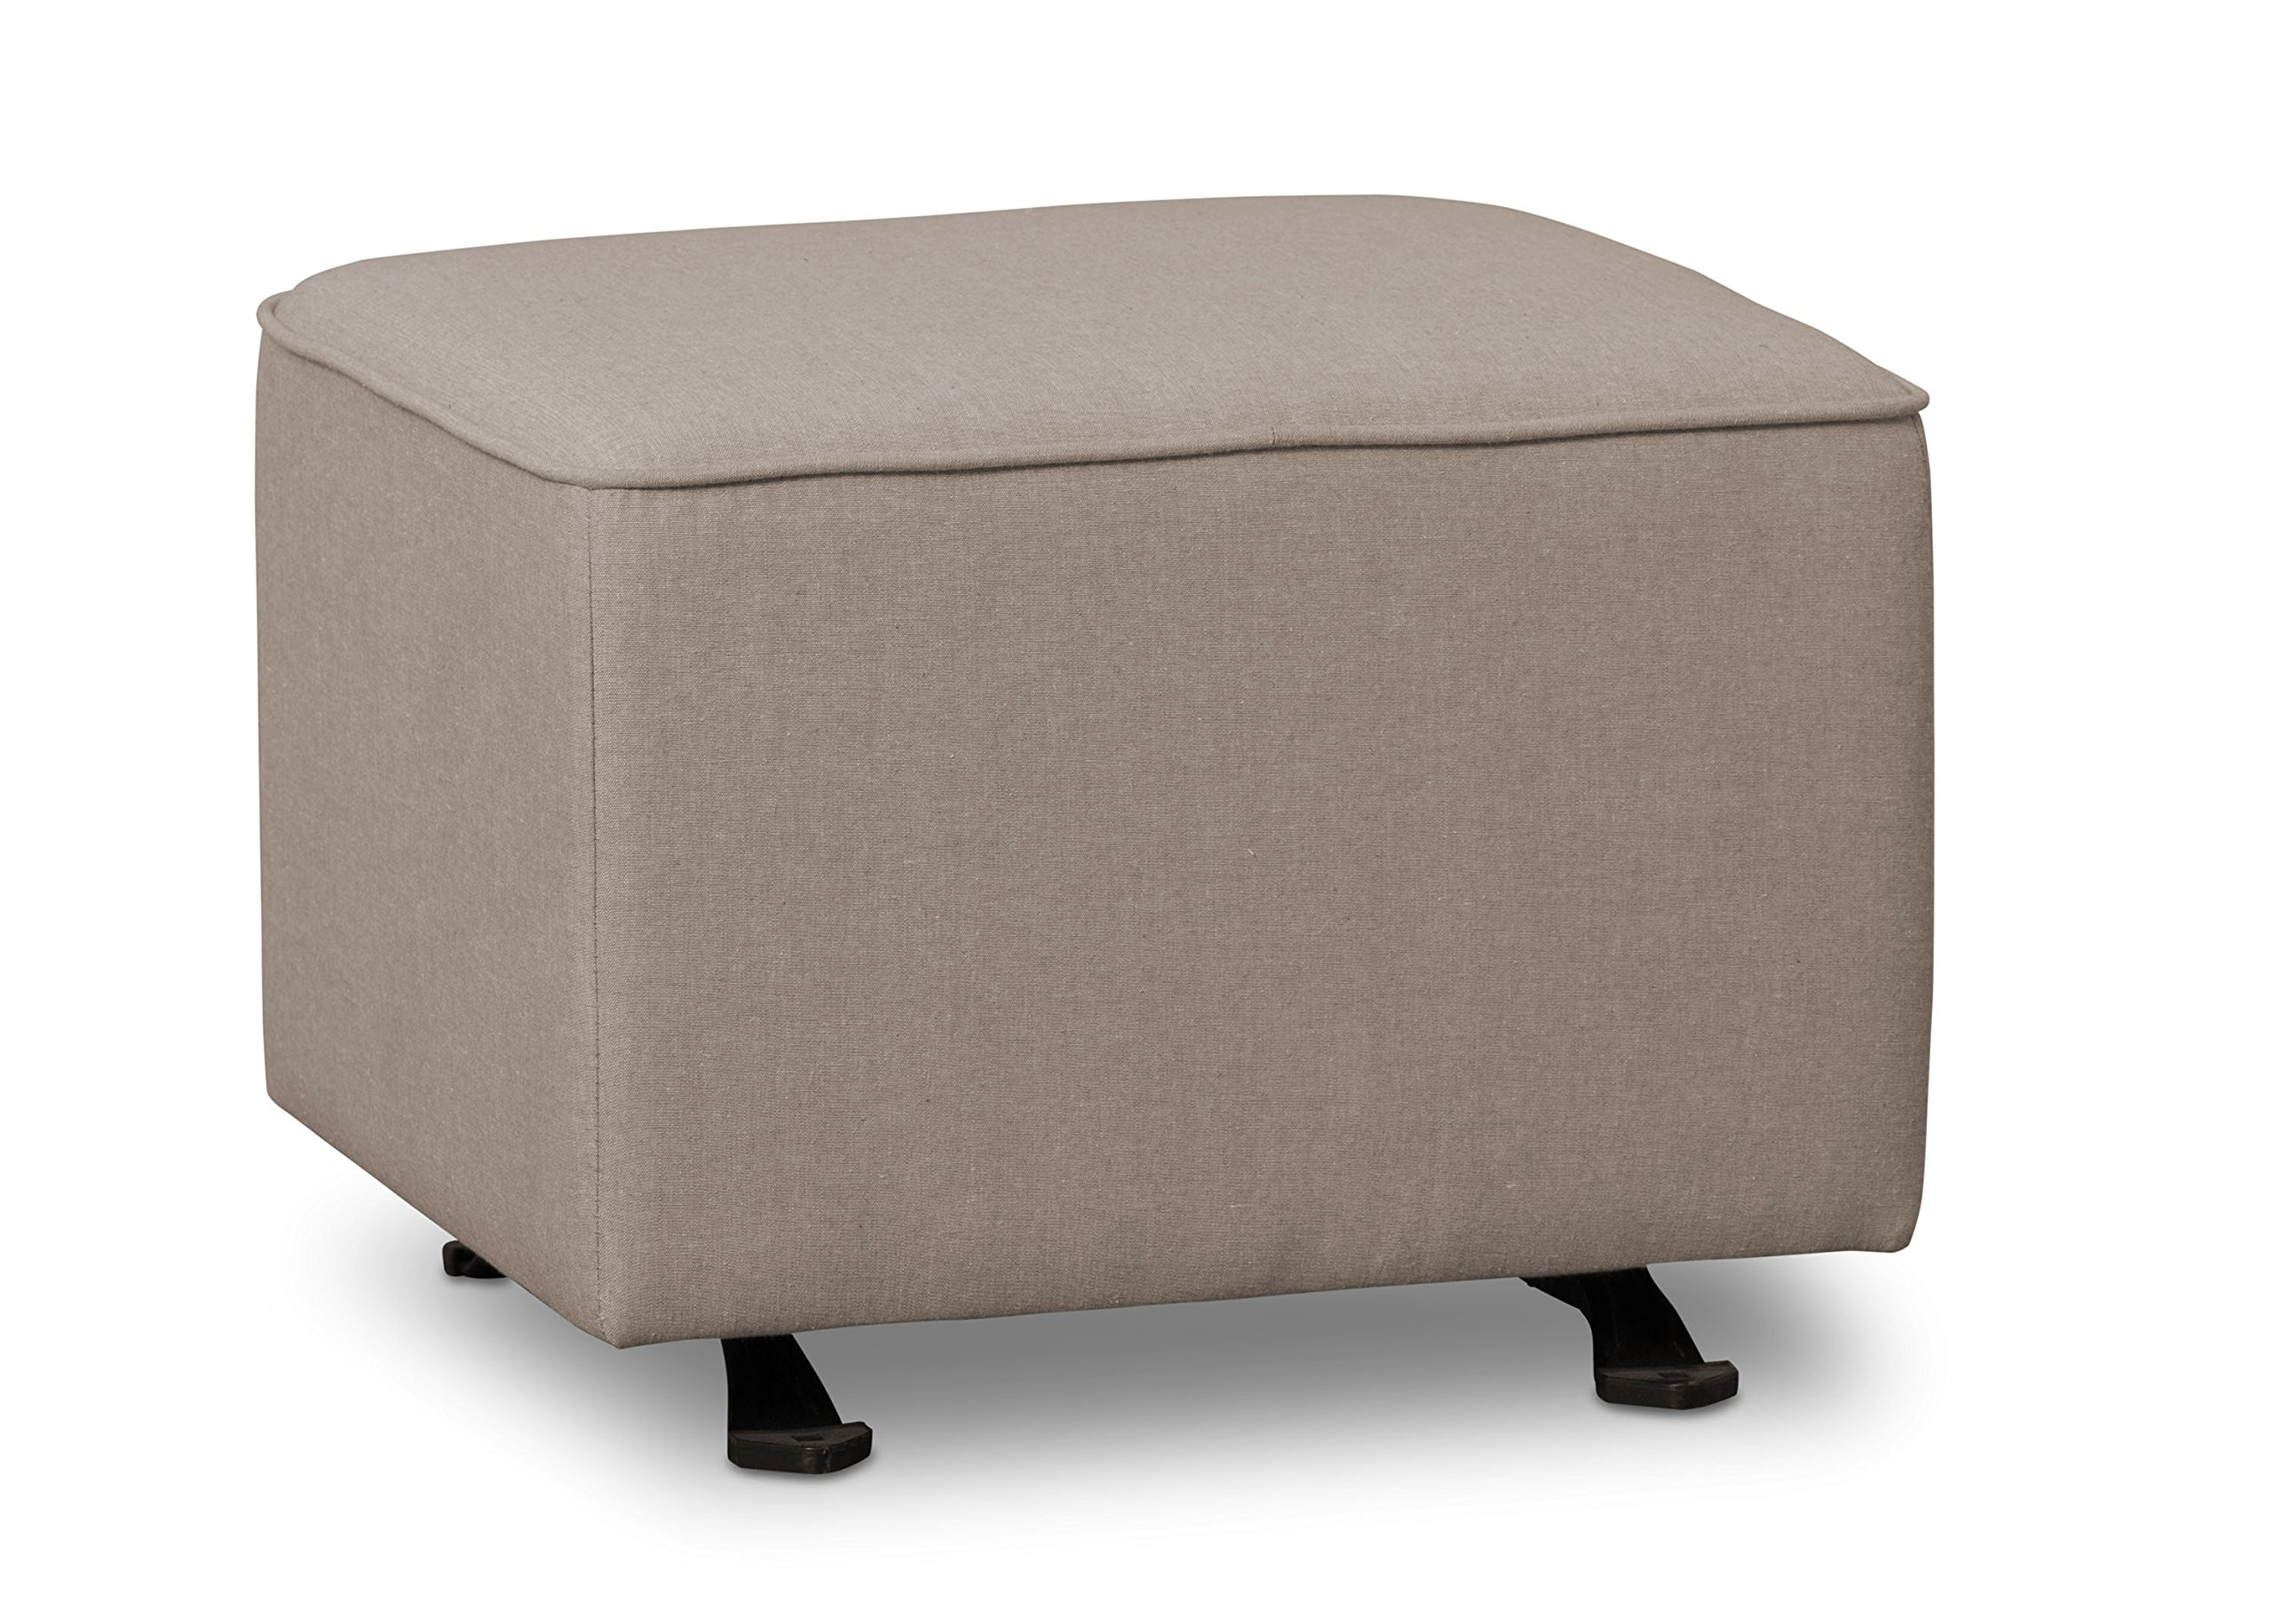 Delta Children Nursery Gliding Ottoman, Heather Grey